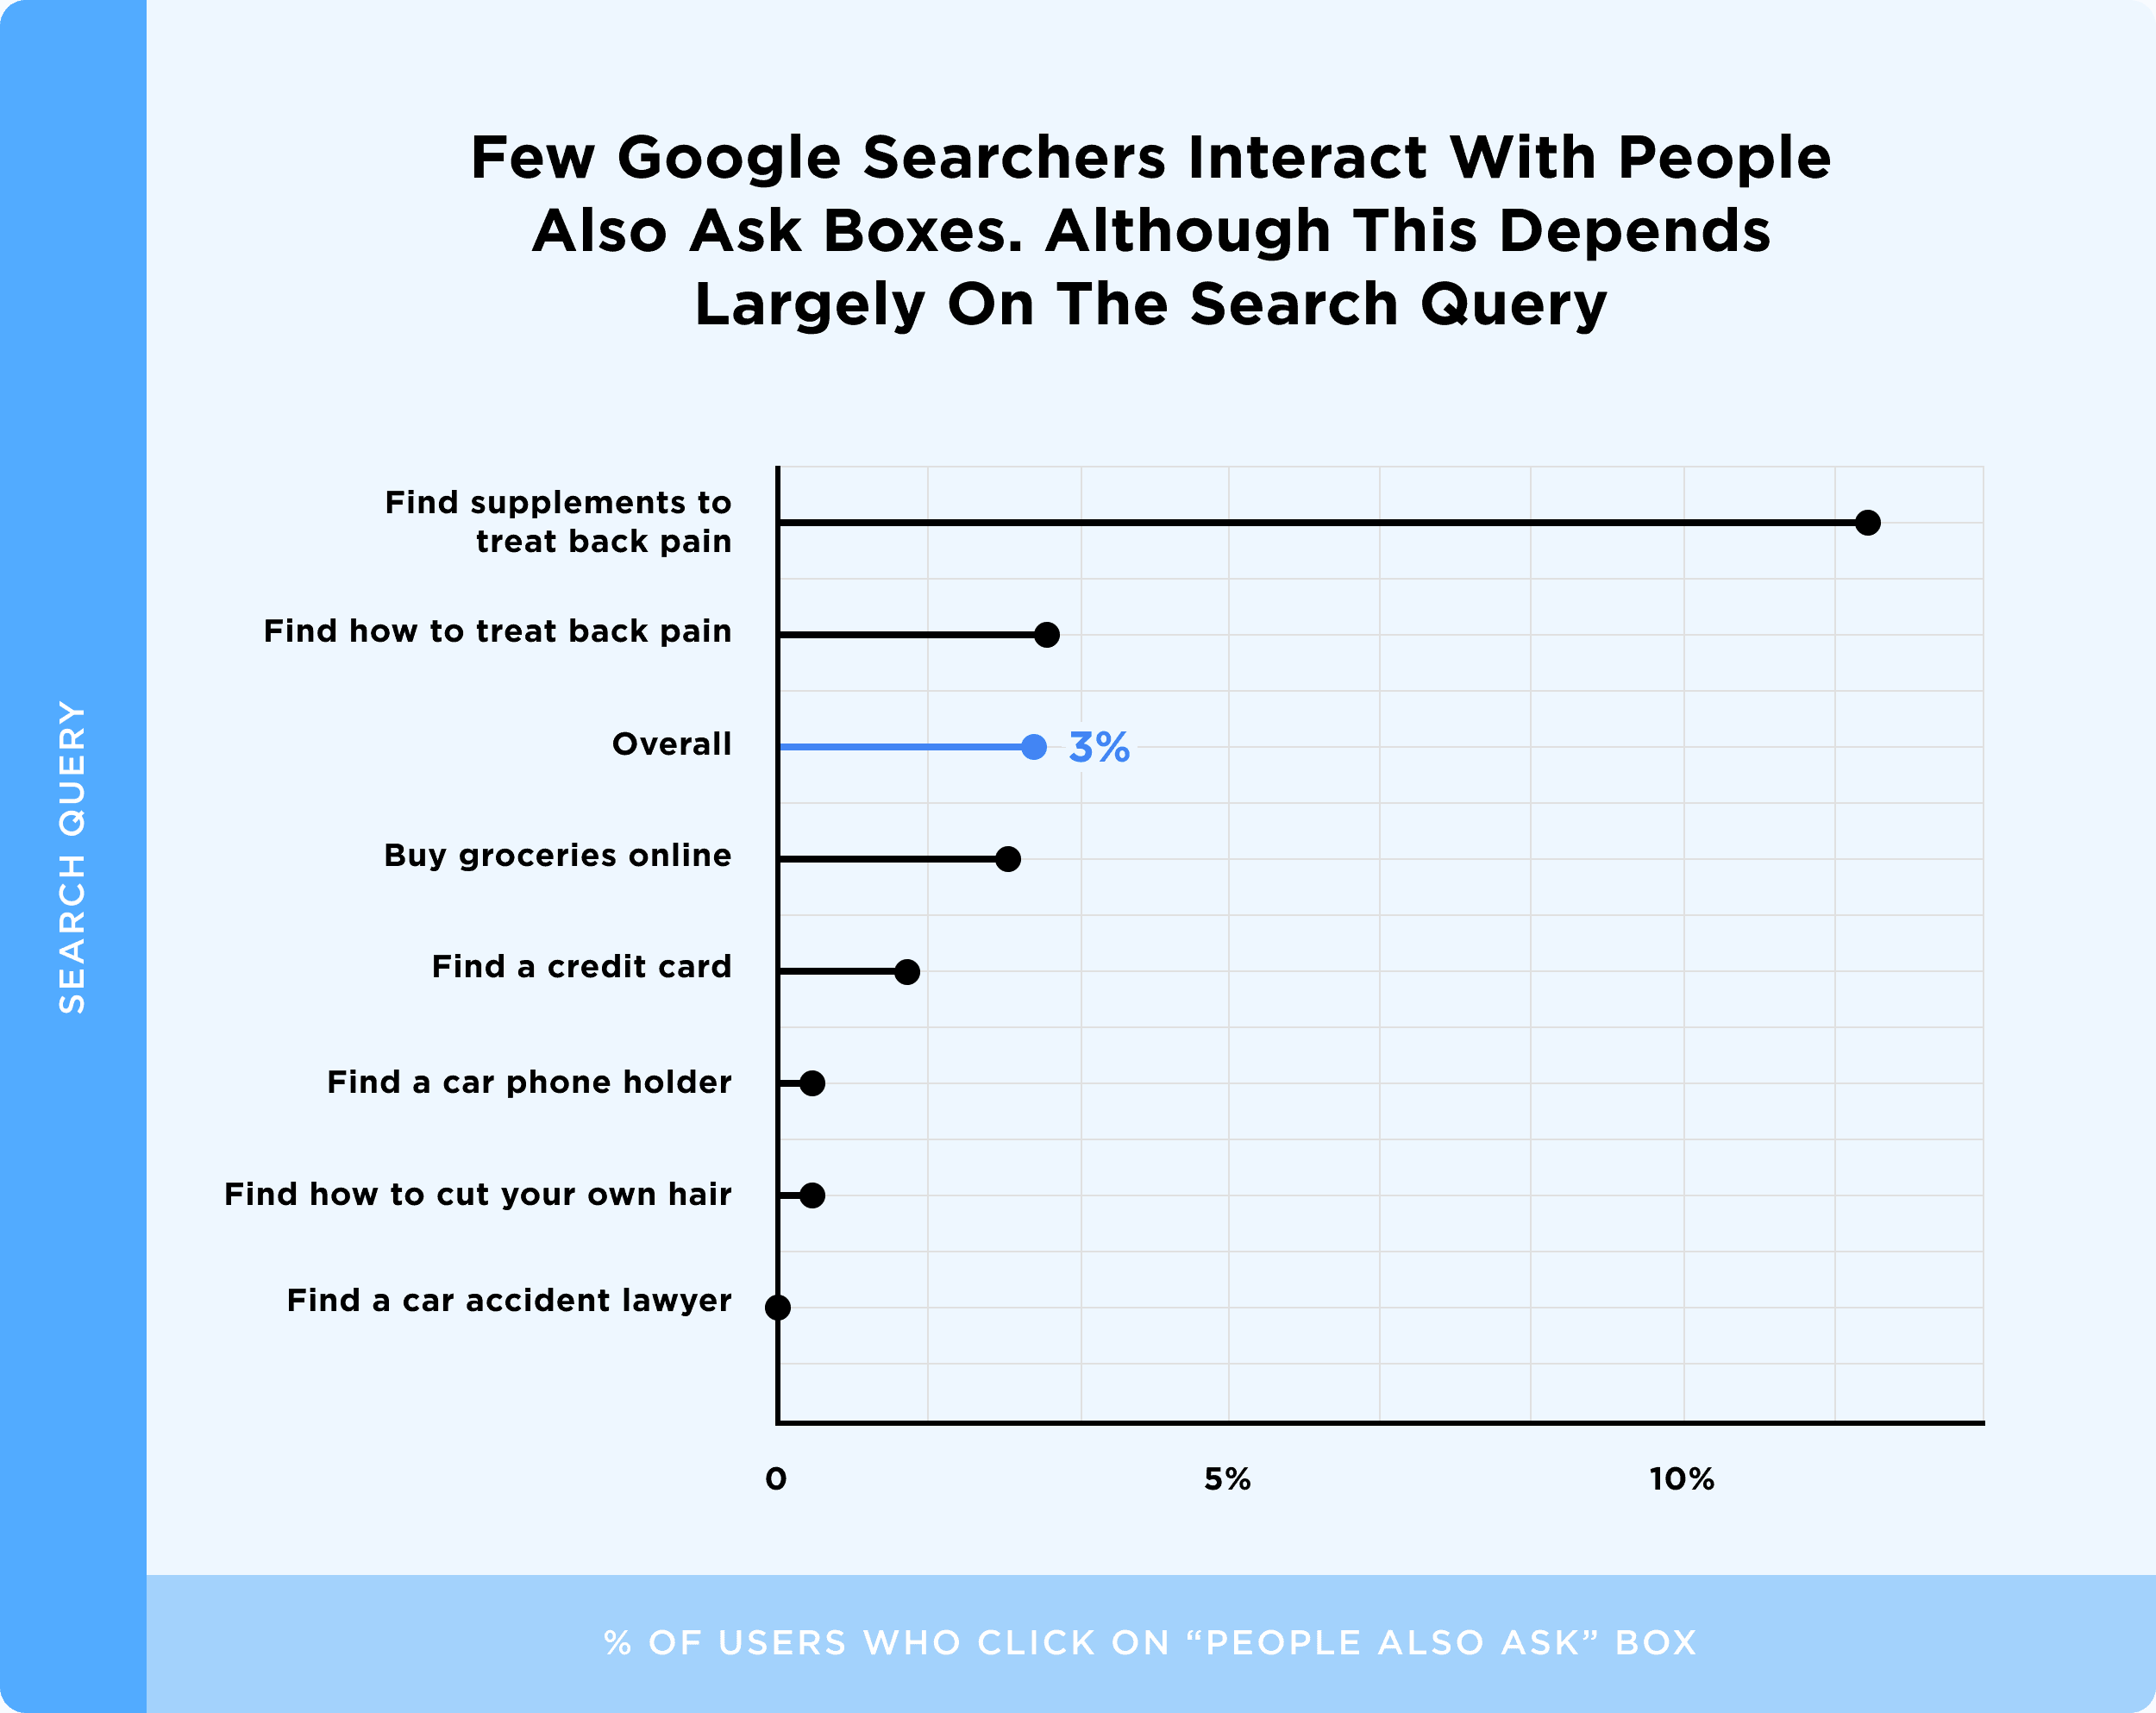 Few Google Searchers Interact With People Also Ask Boxes